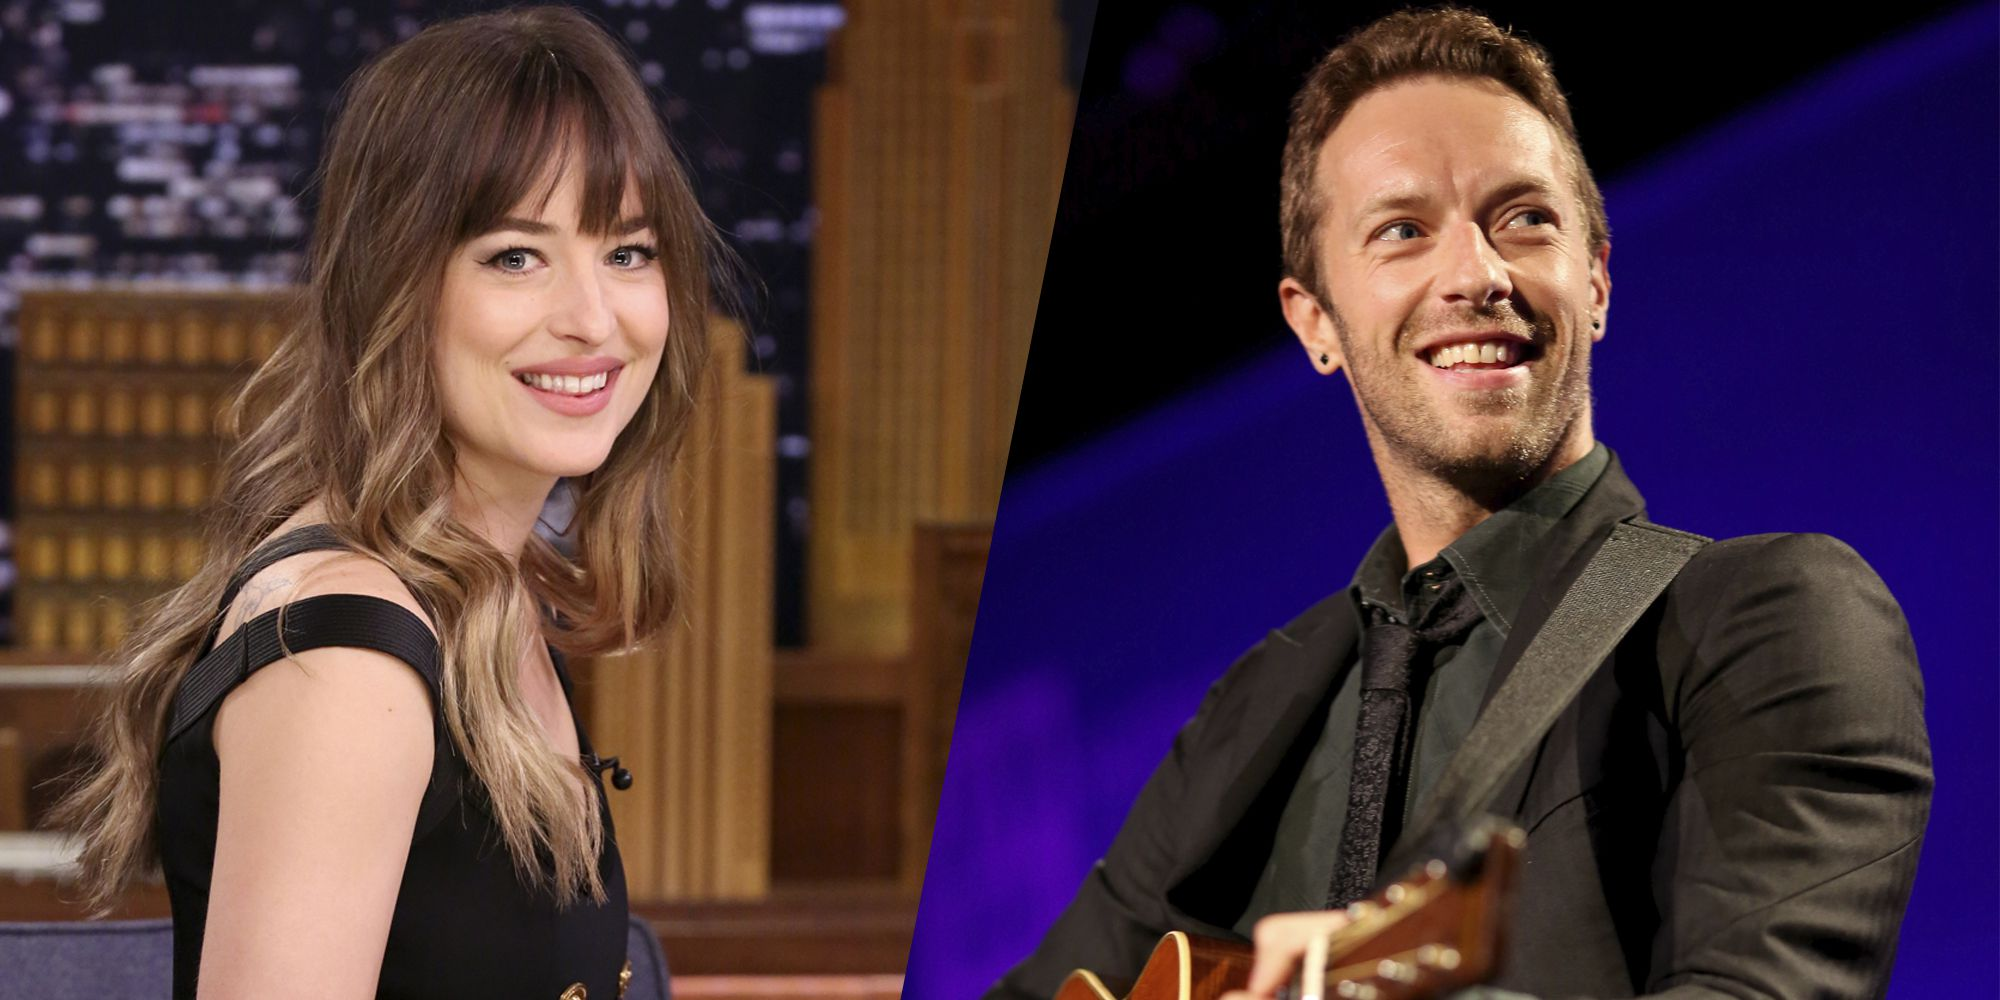 Chris Martin and Dakota Johnson split